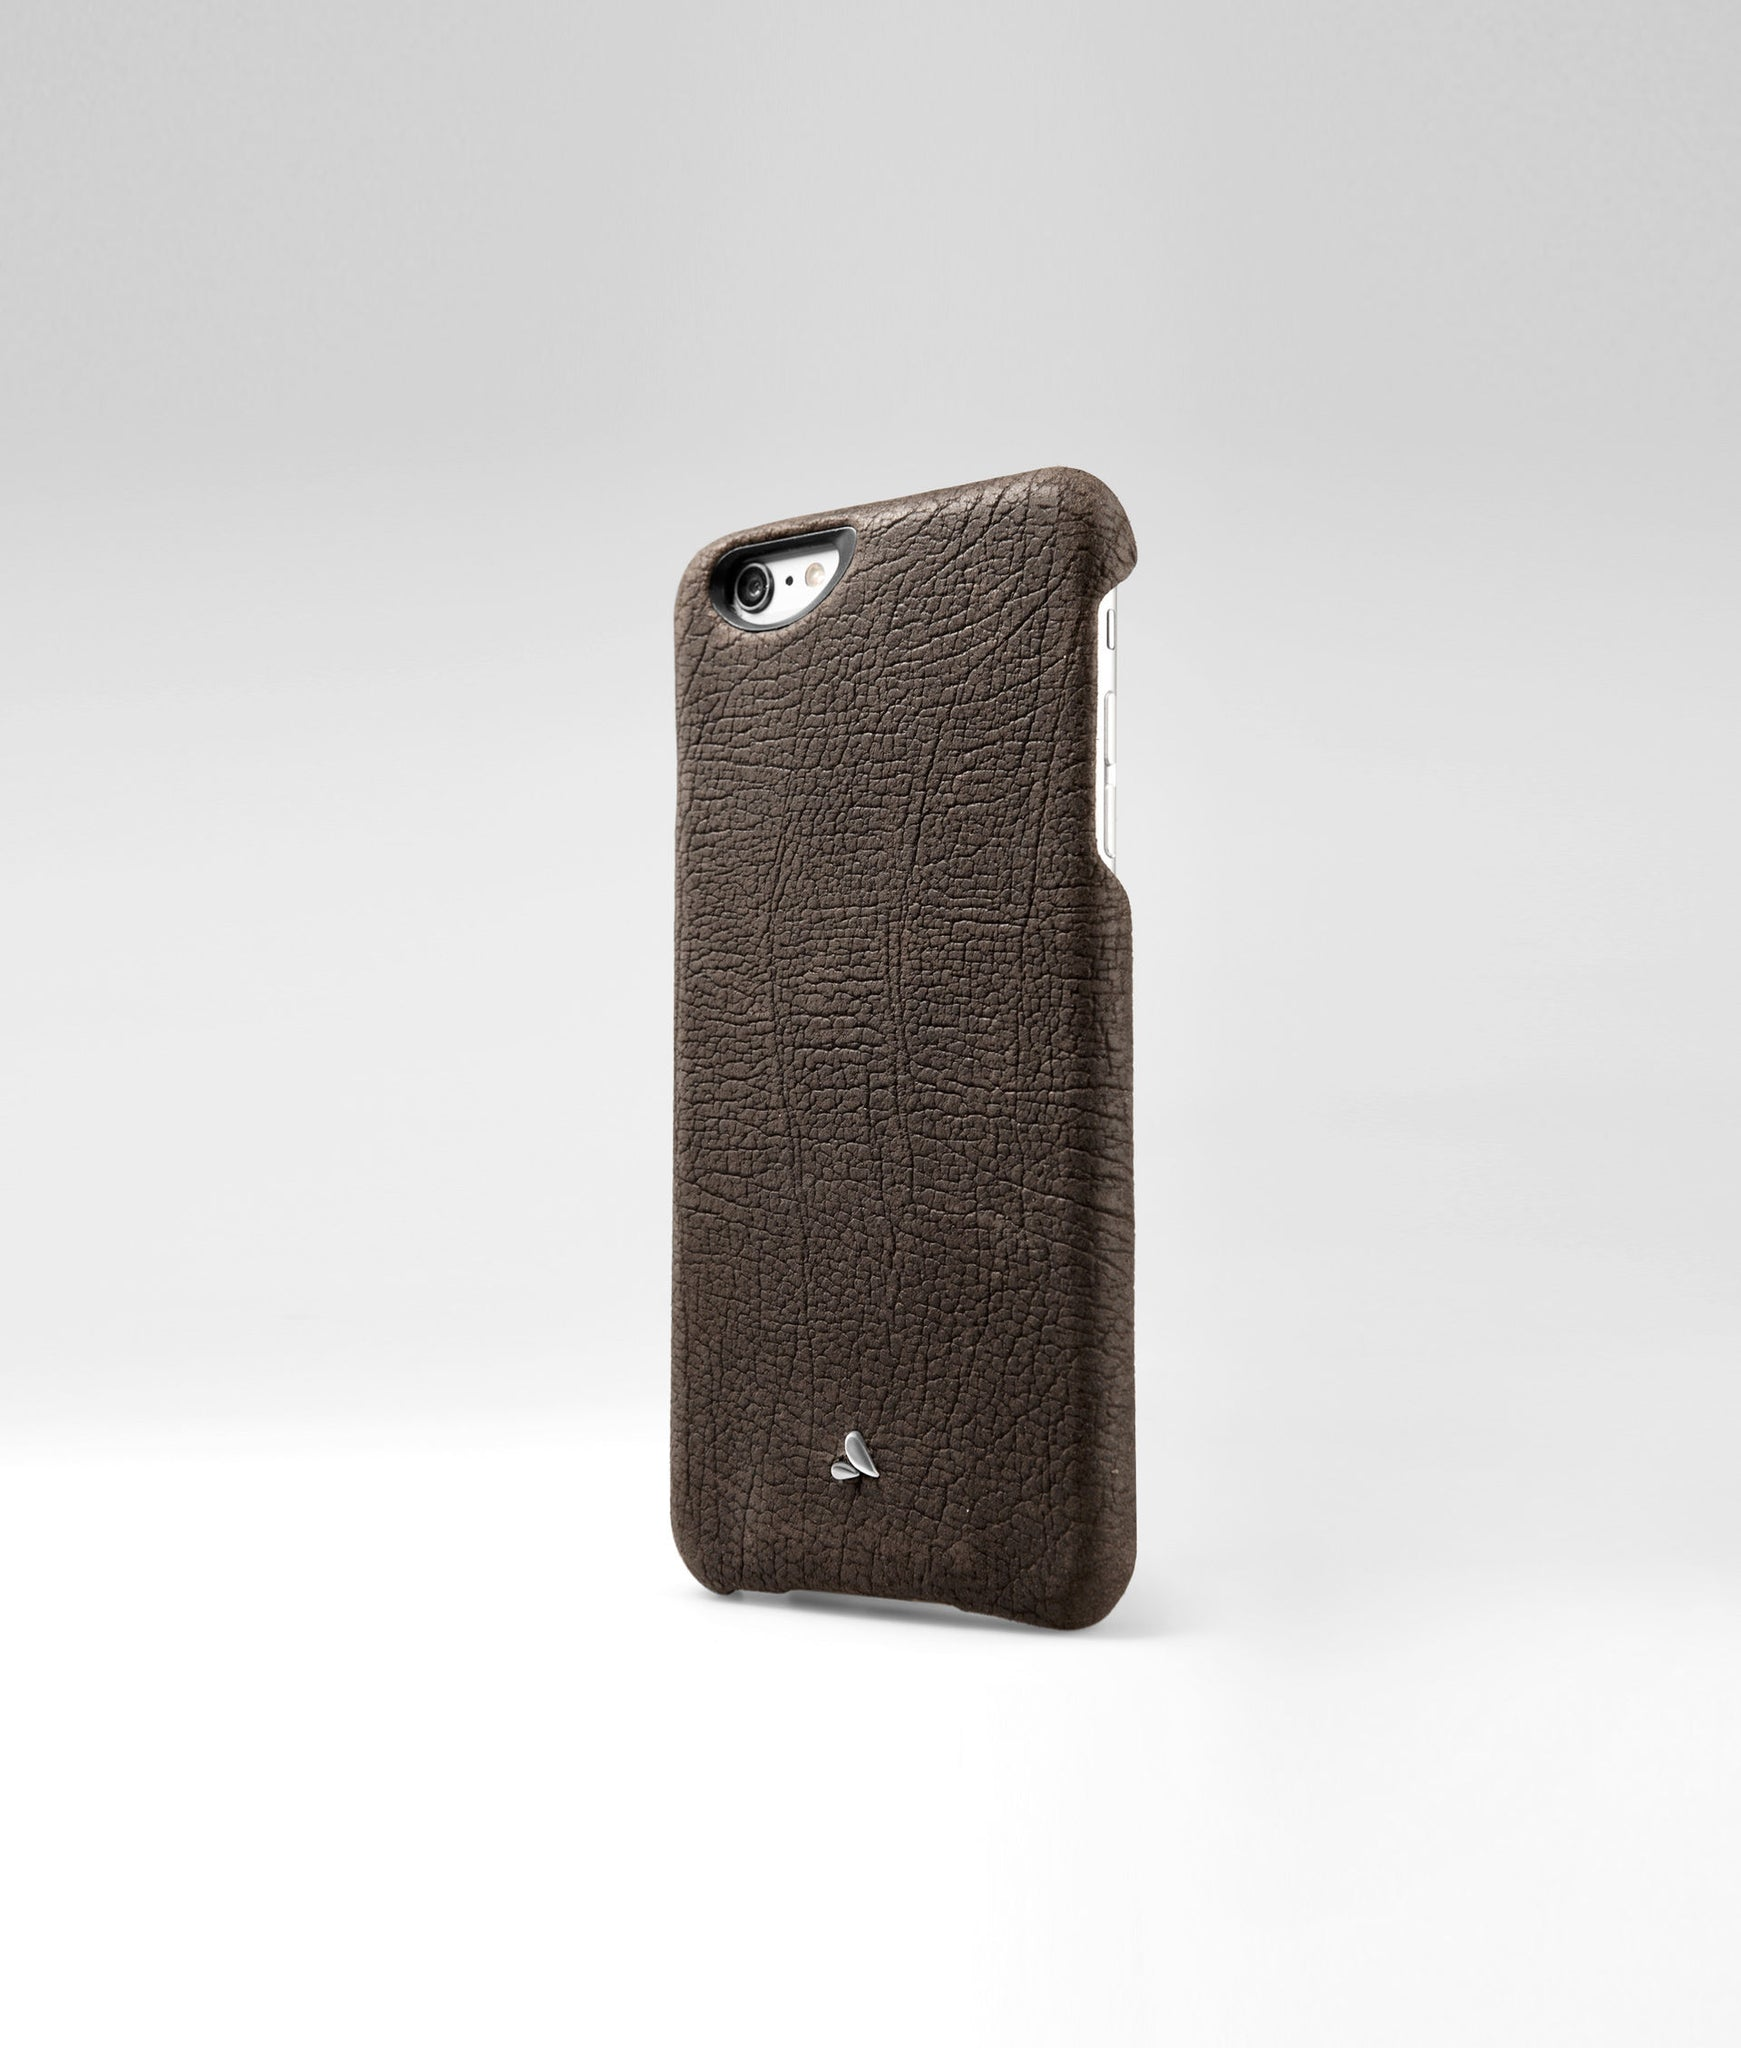 iPhone 6/6s Leather Case Grip Carihué